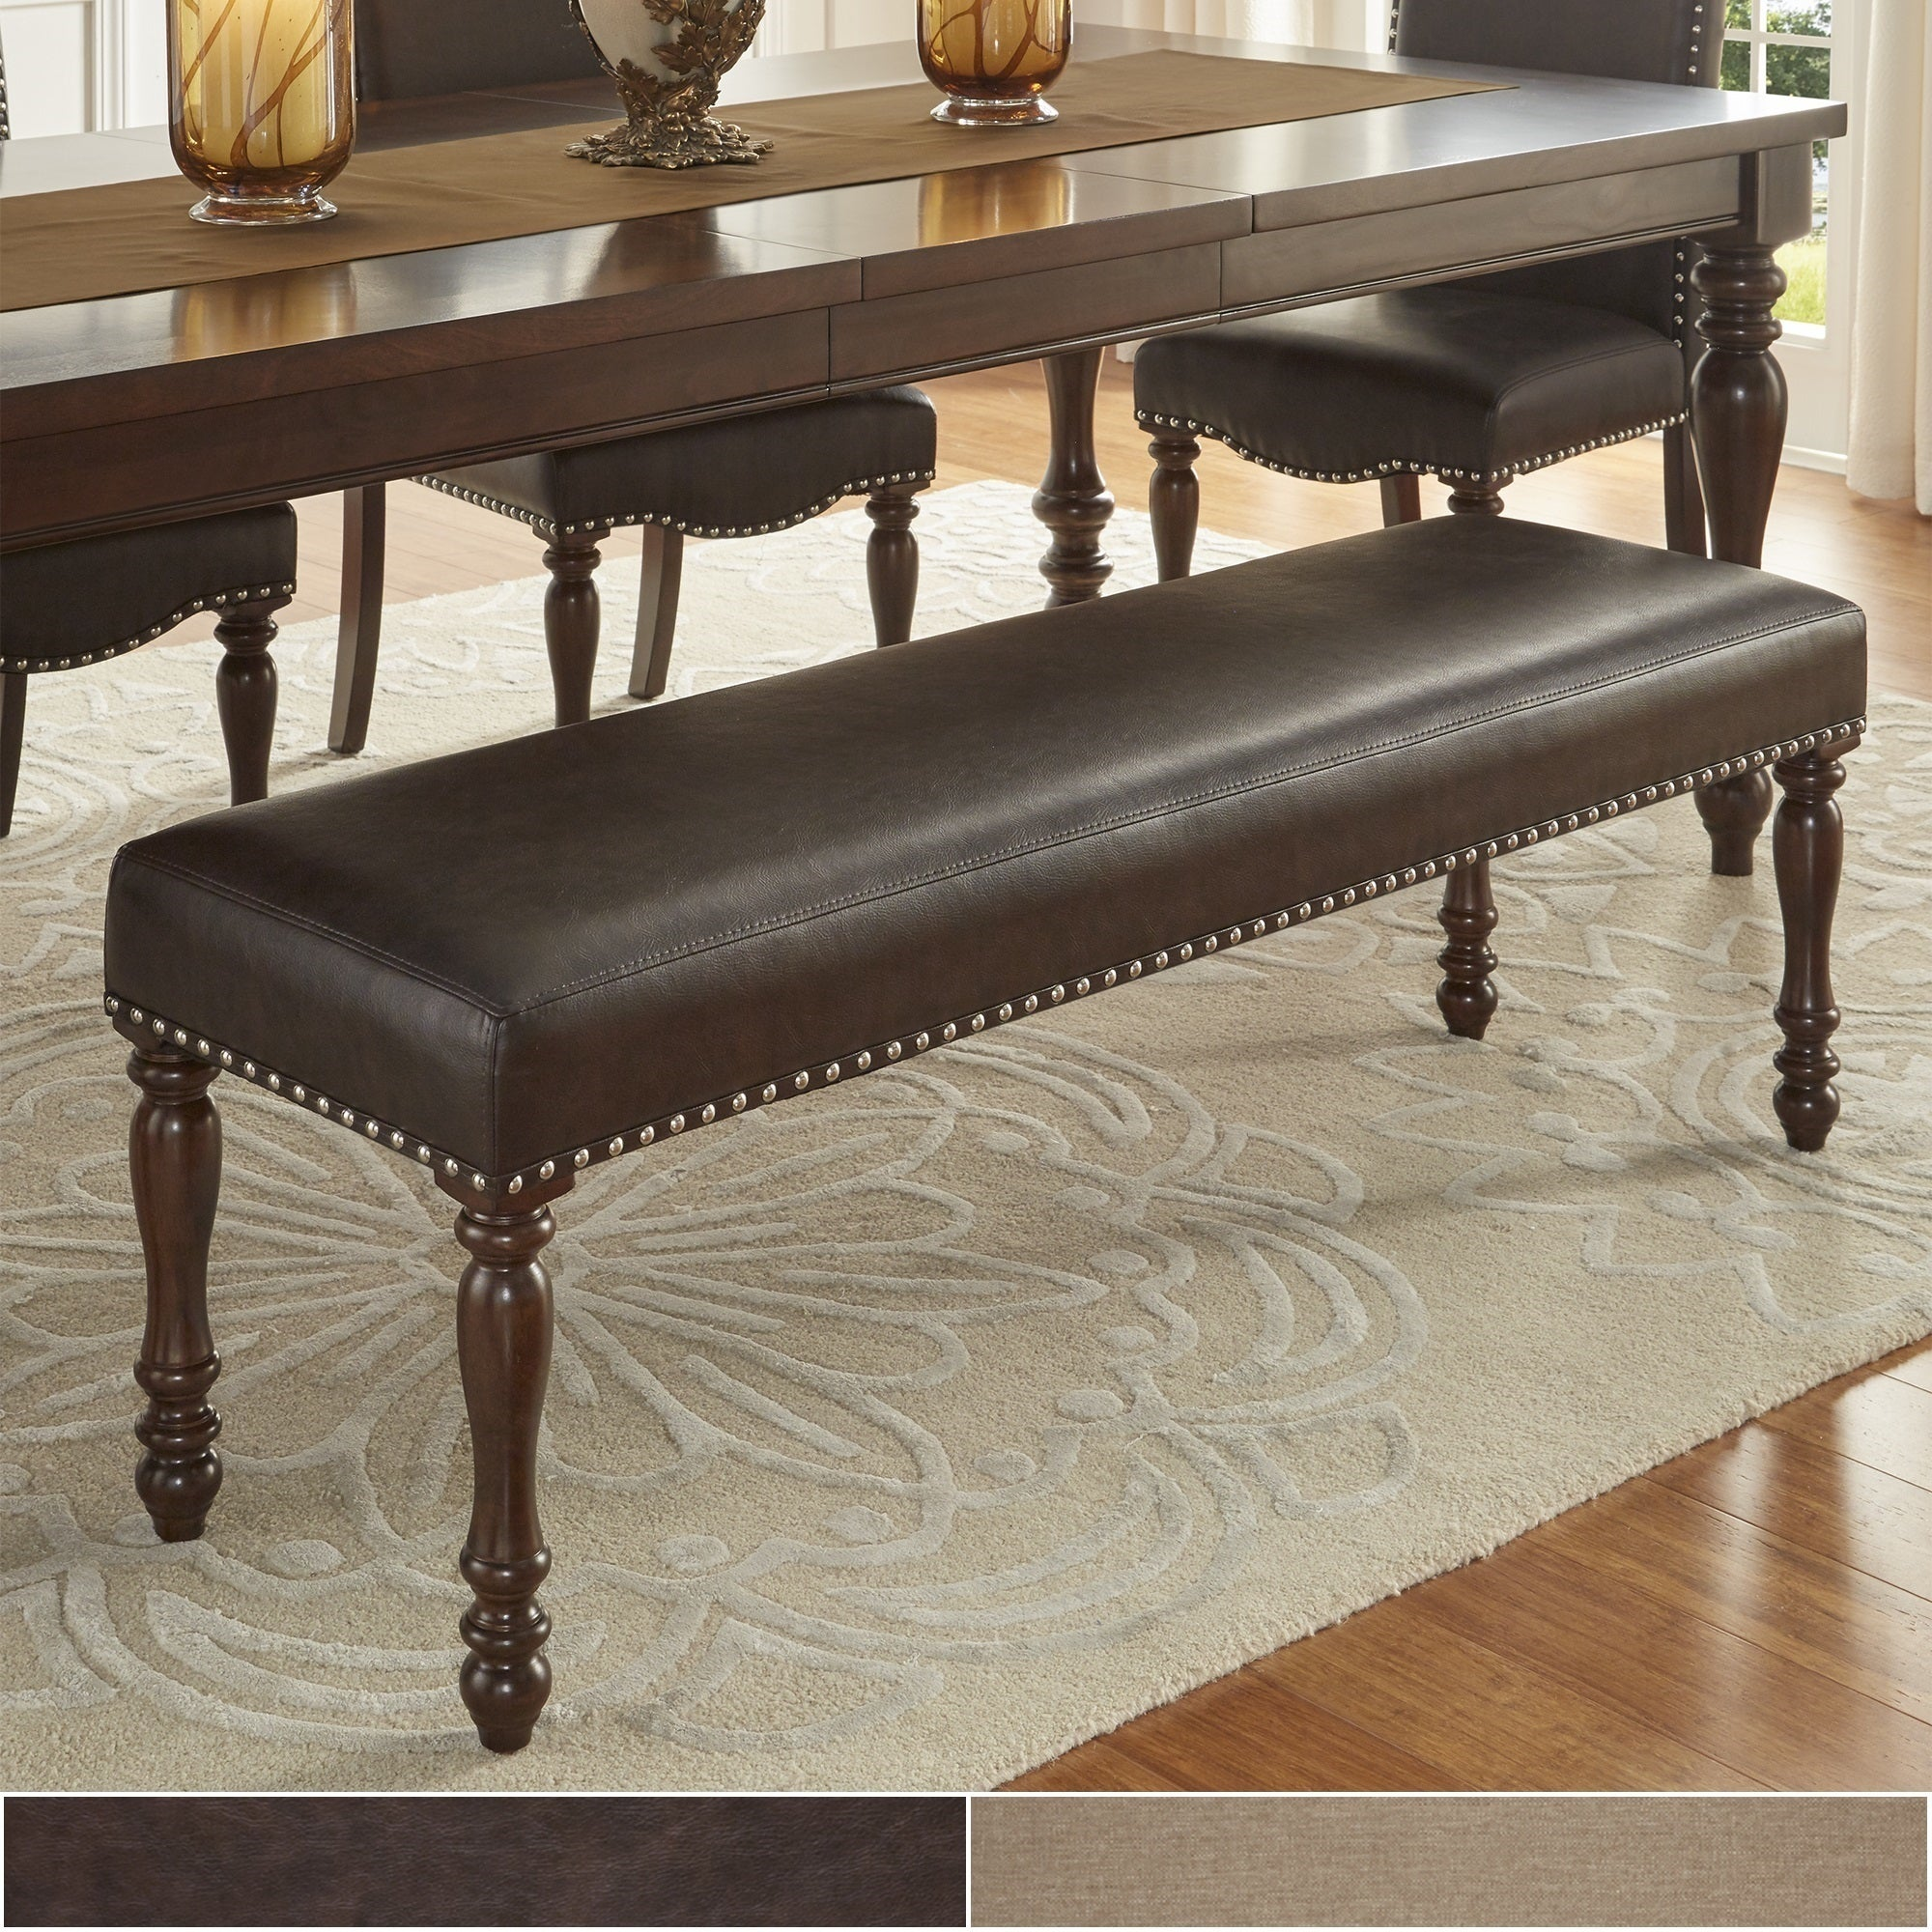 Enjoyable Details About Parisian Nailhead 56 Inch Upholstered Dining Bench By Beige N A Pabps2019 Chair Design Images Pabps2019Com